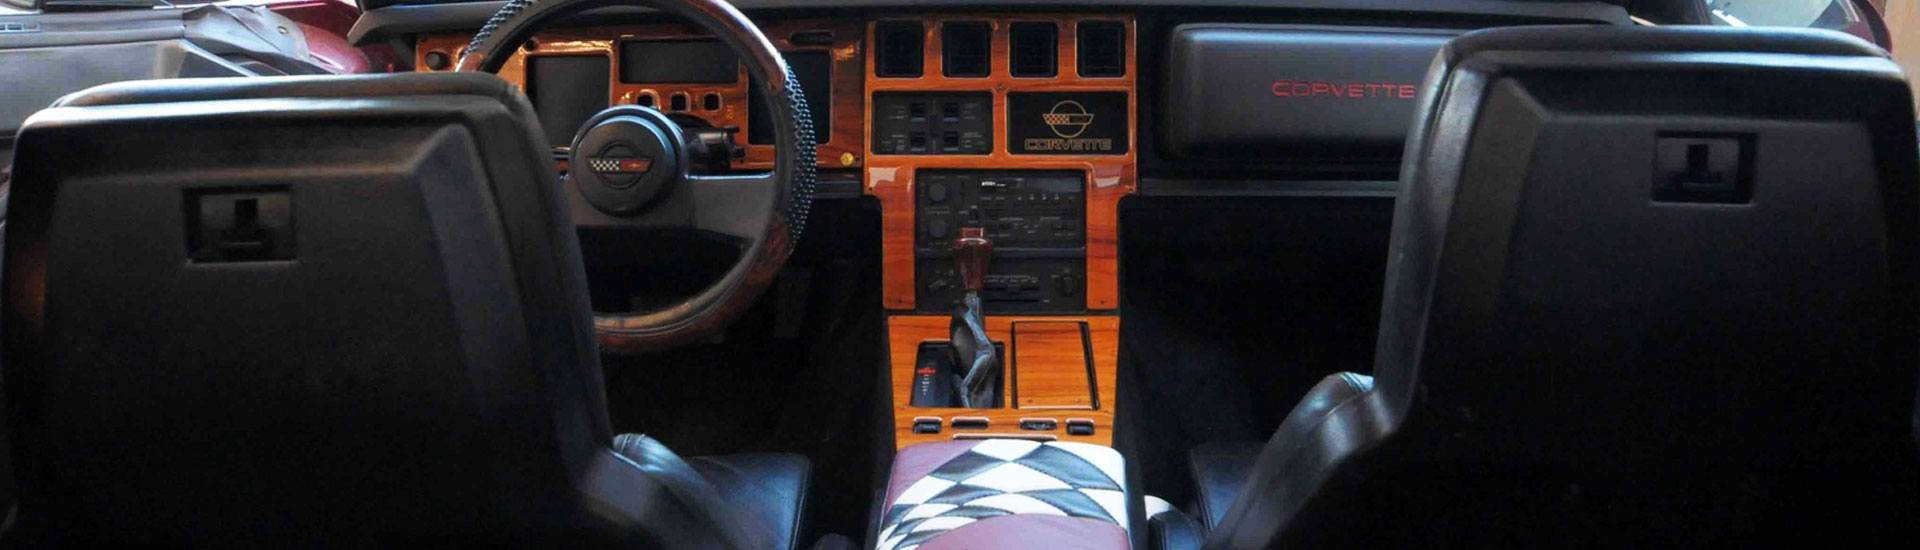 1987 Chevrolet Corvette Dash Kits